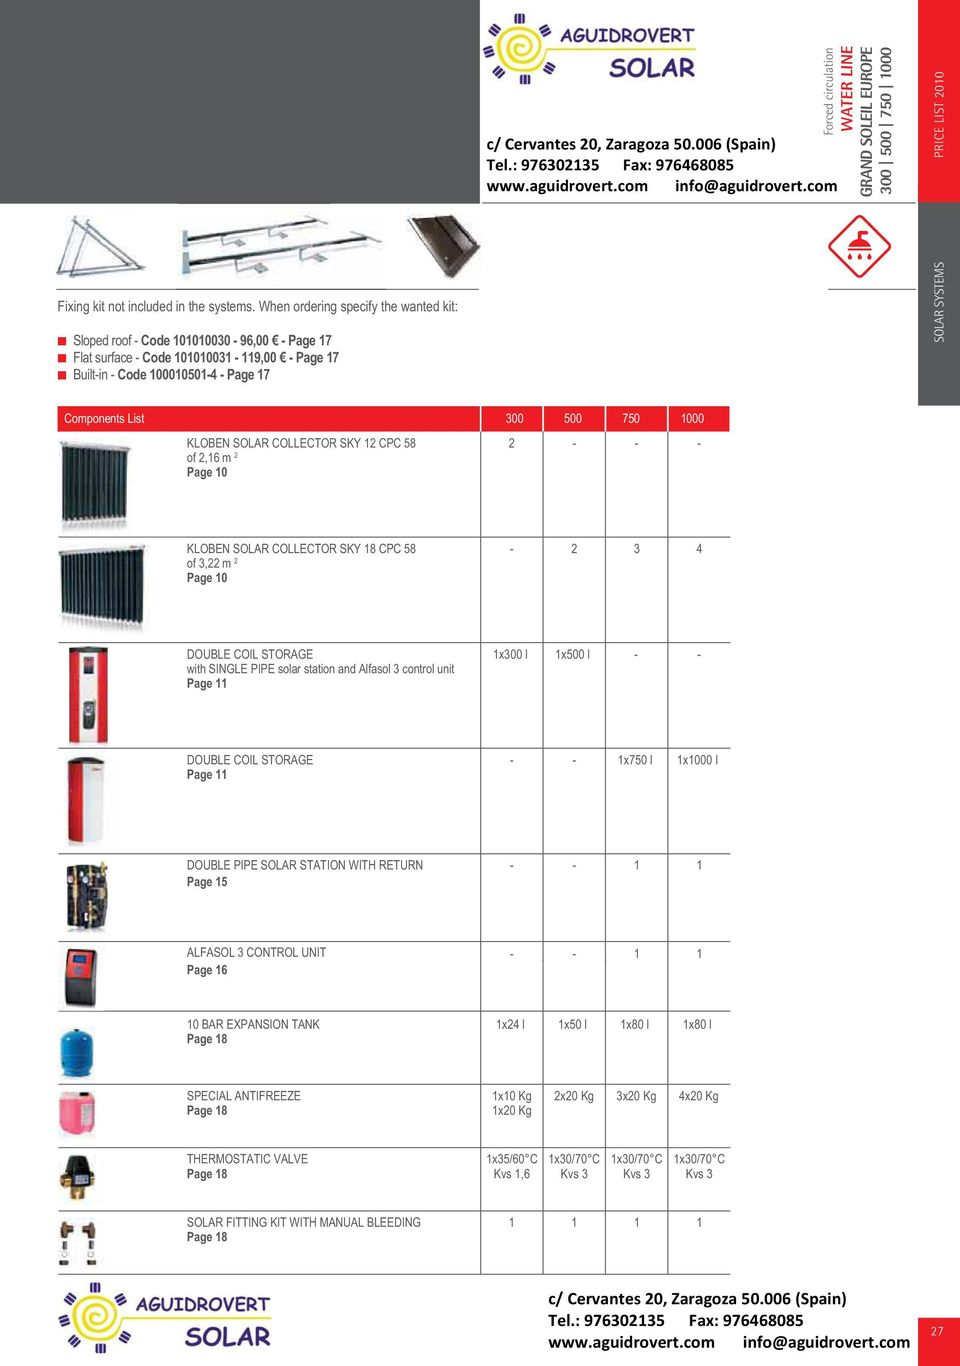 GRAND SOLEIL EUROPE 300 500 750 1000 SOLAR SYSTEMS PRICE LIST 2010 Components List 300 500 750 1000 KLOBEN SOLAR COLLECTOR SKY 12 CPC 58 of 2,16 m 2 Page 10 2 - - - KLOBEN SOLAR COLLECTOR SKY 18 CPC